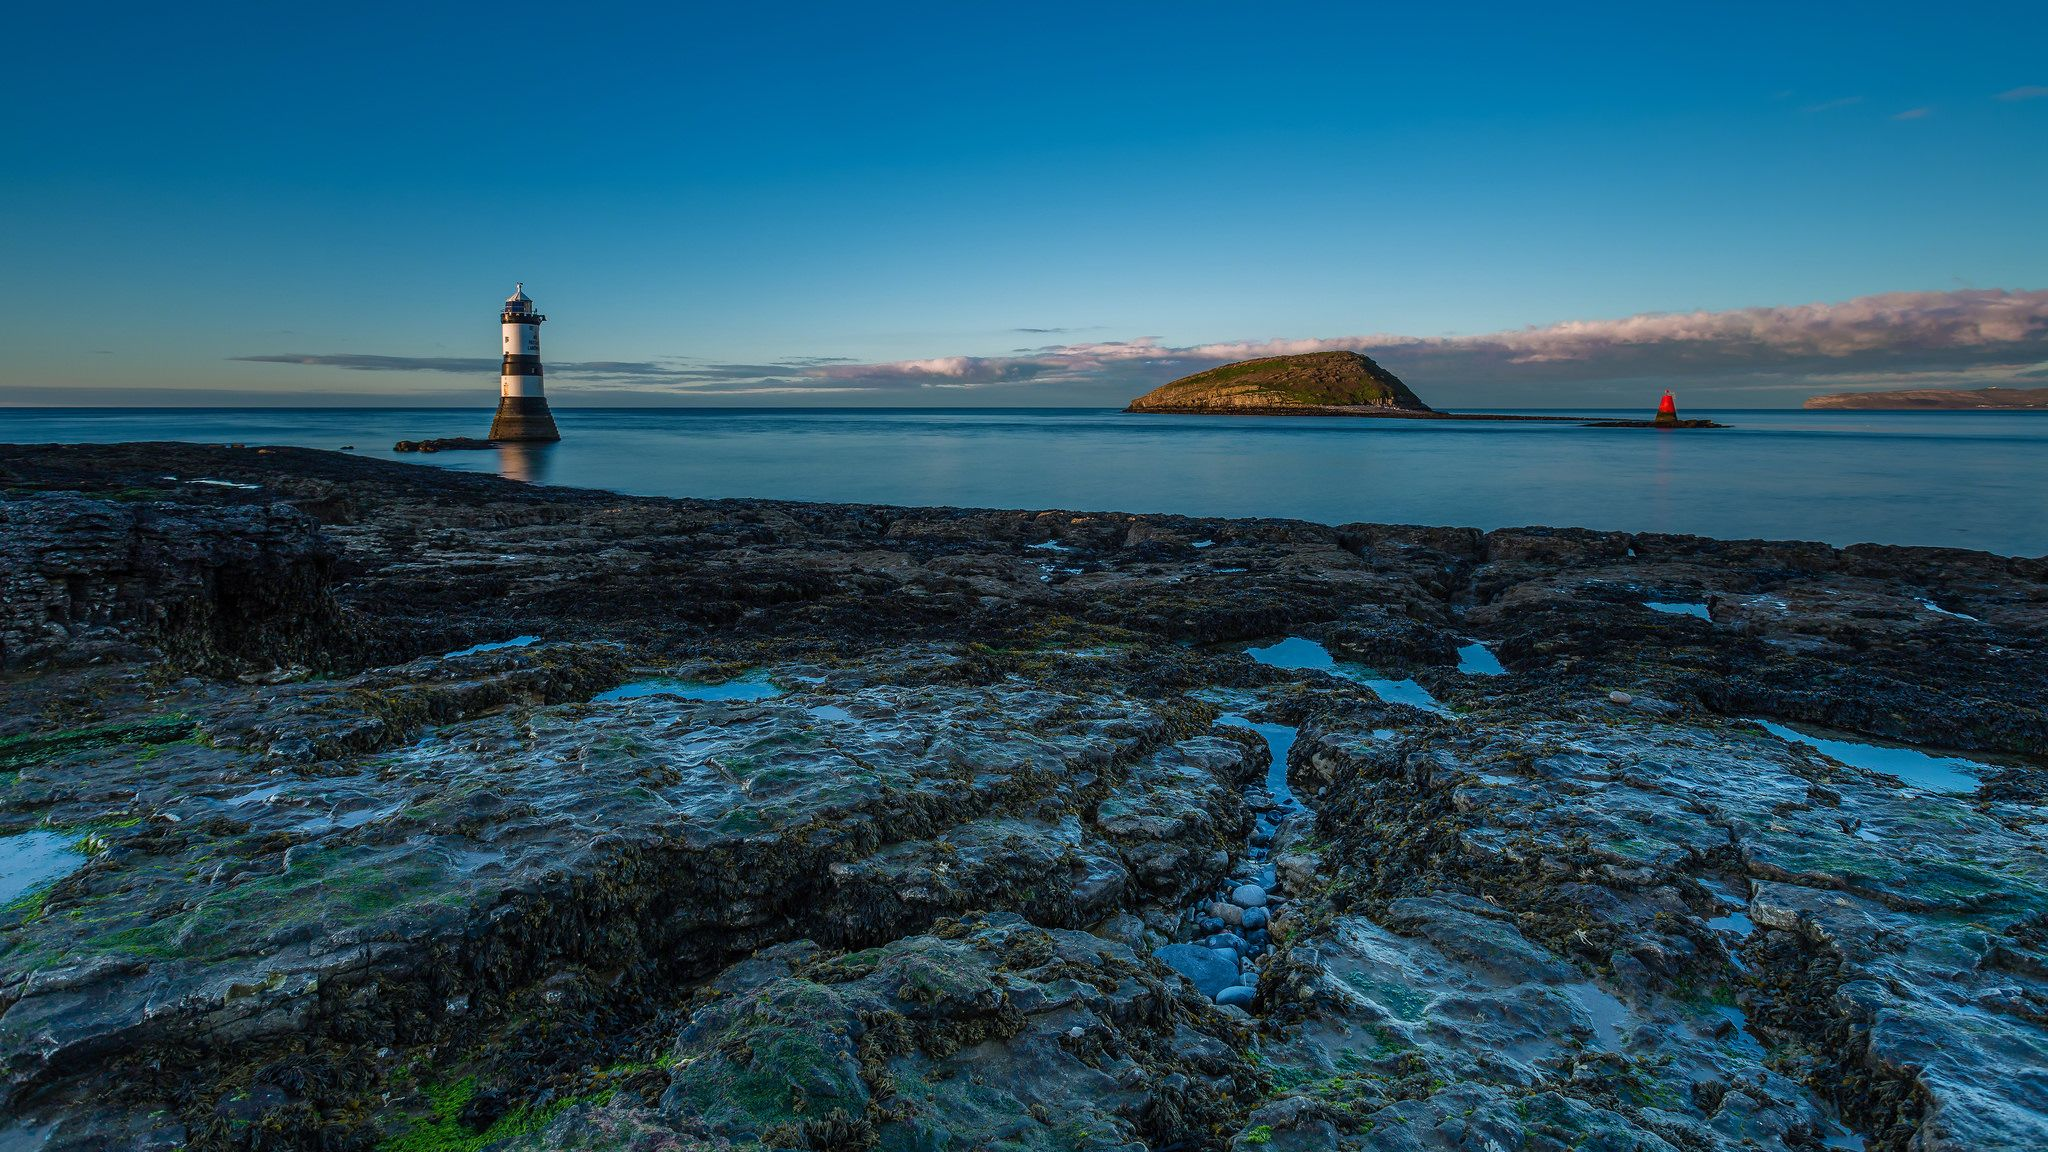 https://flic.kr/p/mLHKhi | 'Clear Blue Skies' - Trwyn Du, Anglesey | I'd kinda forgotten what a clear blue sky looked like.   Tonight I went chasing some tasty looking clouds, but as I got closer, they went further away. Still, I managed to catch this image which presented the last rays of the day as the sun went down behind me.  However, I then jumped back in my car and went Warp 9 (where Warp 9 = the safe and legal speed limit!) to the other side of the island to see if there were any…